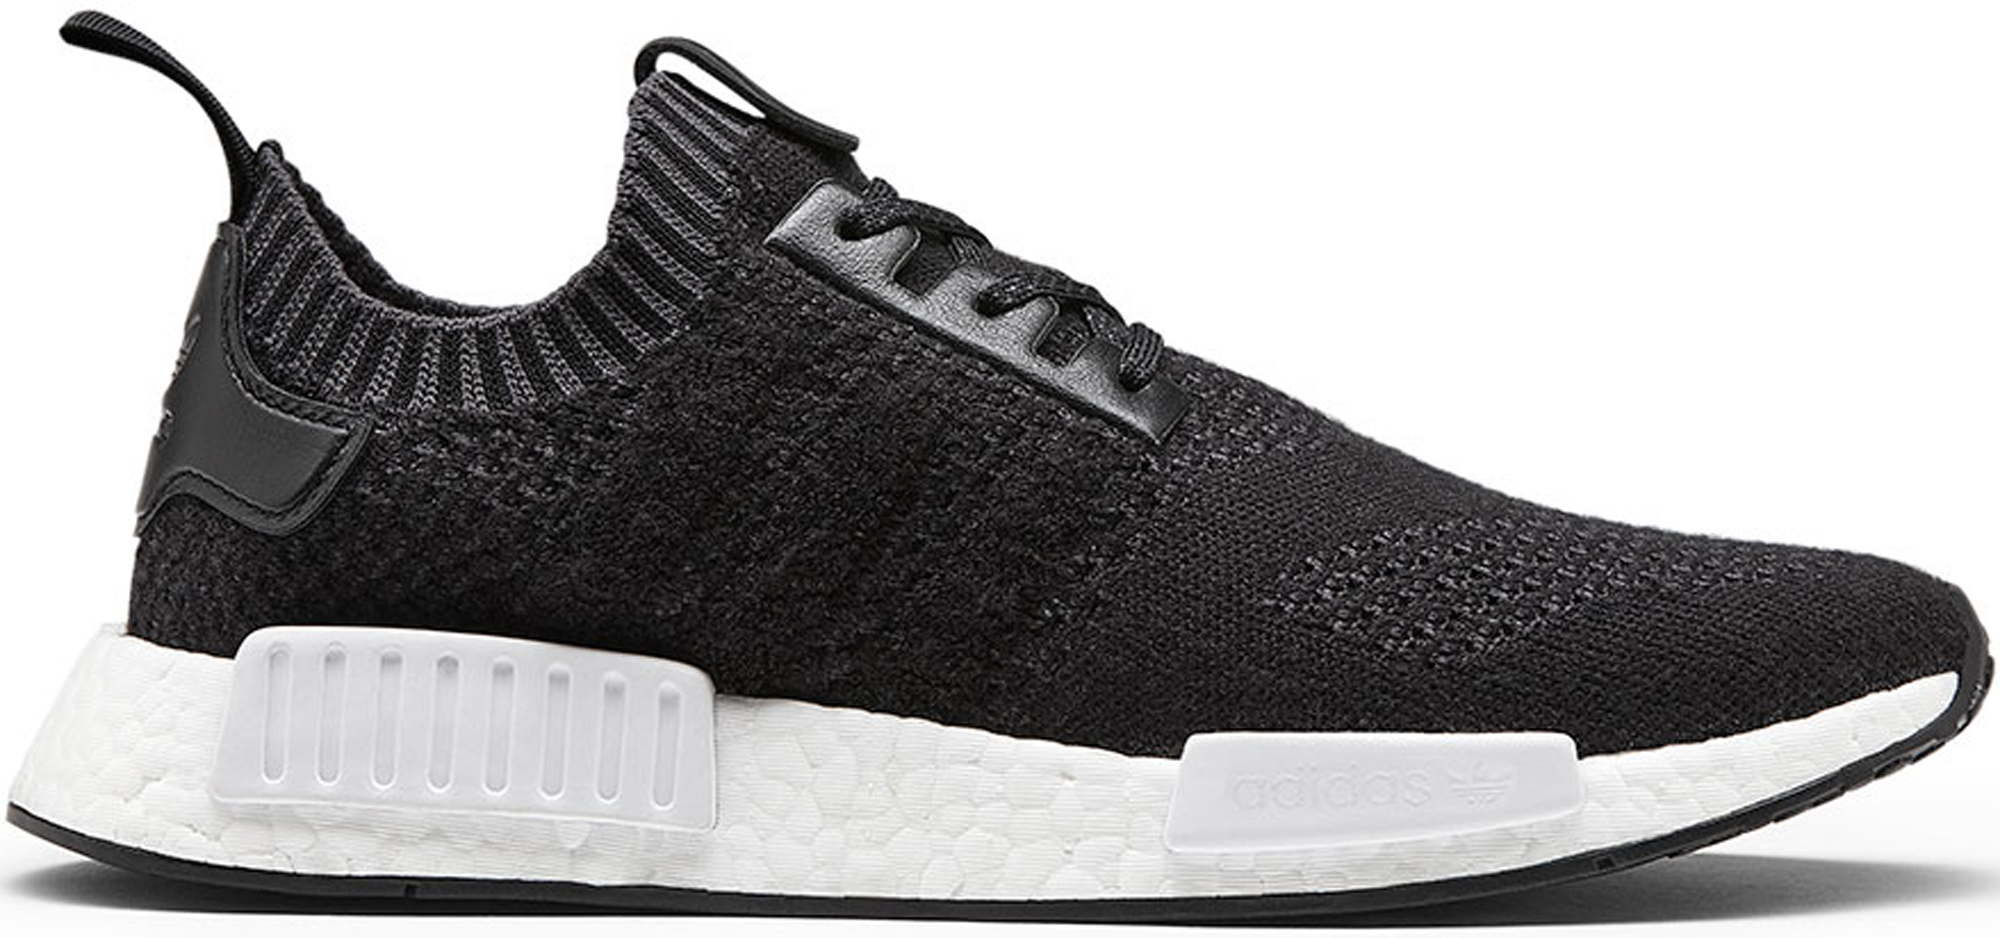 adidas NMD R1 A Ma Maniere x Invincible Cashmere Wool